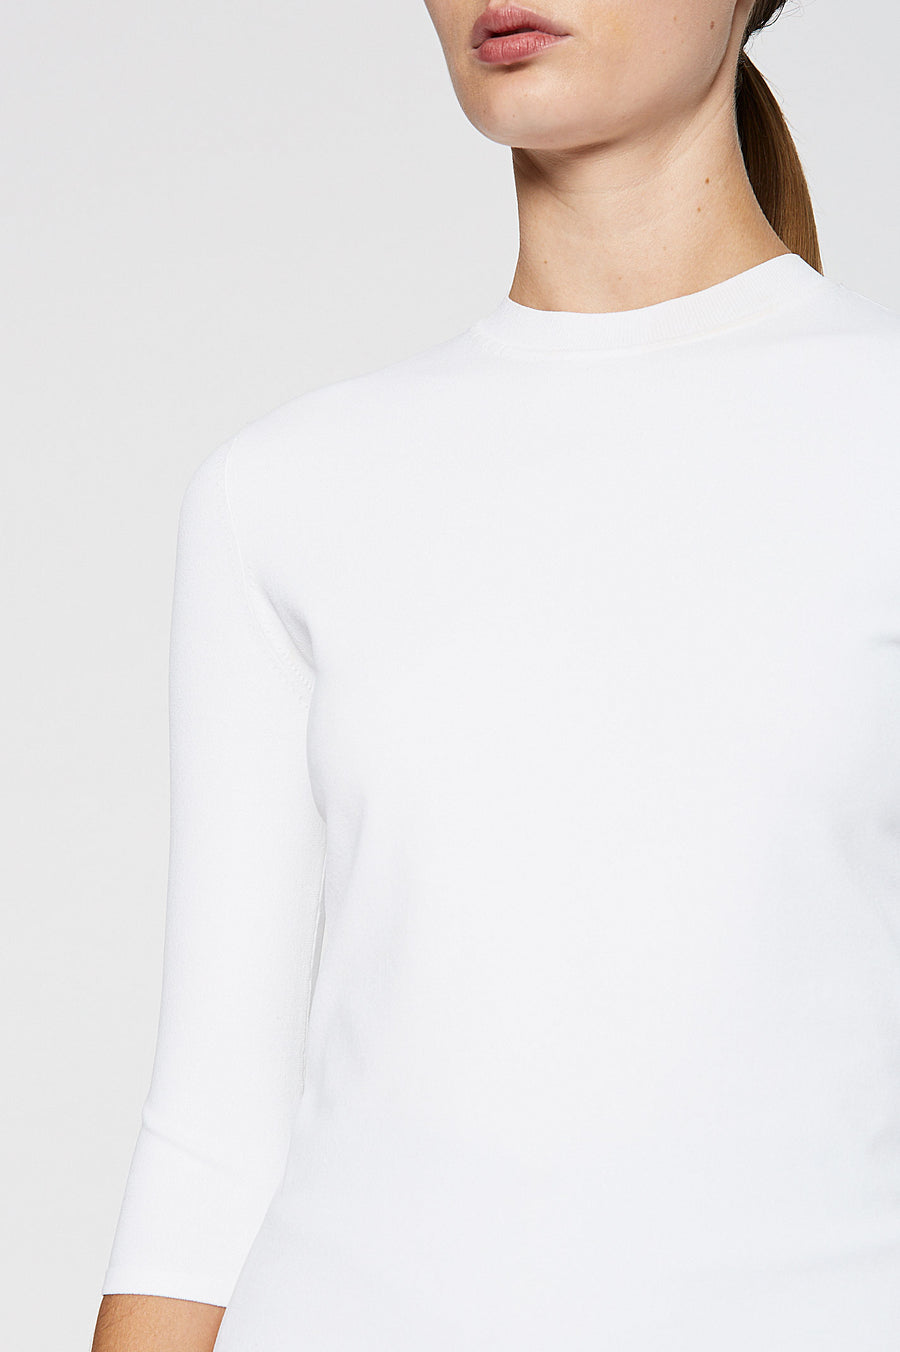 ANGEL CREW NECK SWEATER 18, microcrepe scoop neck. Color White